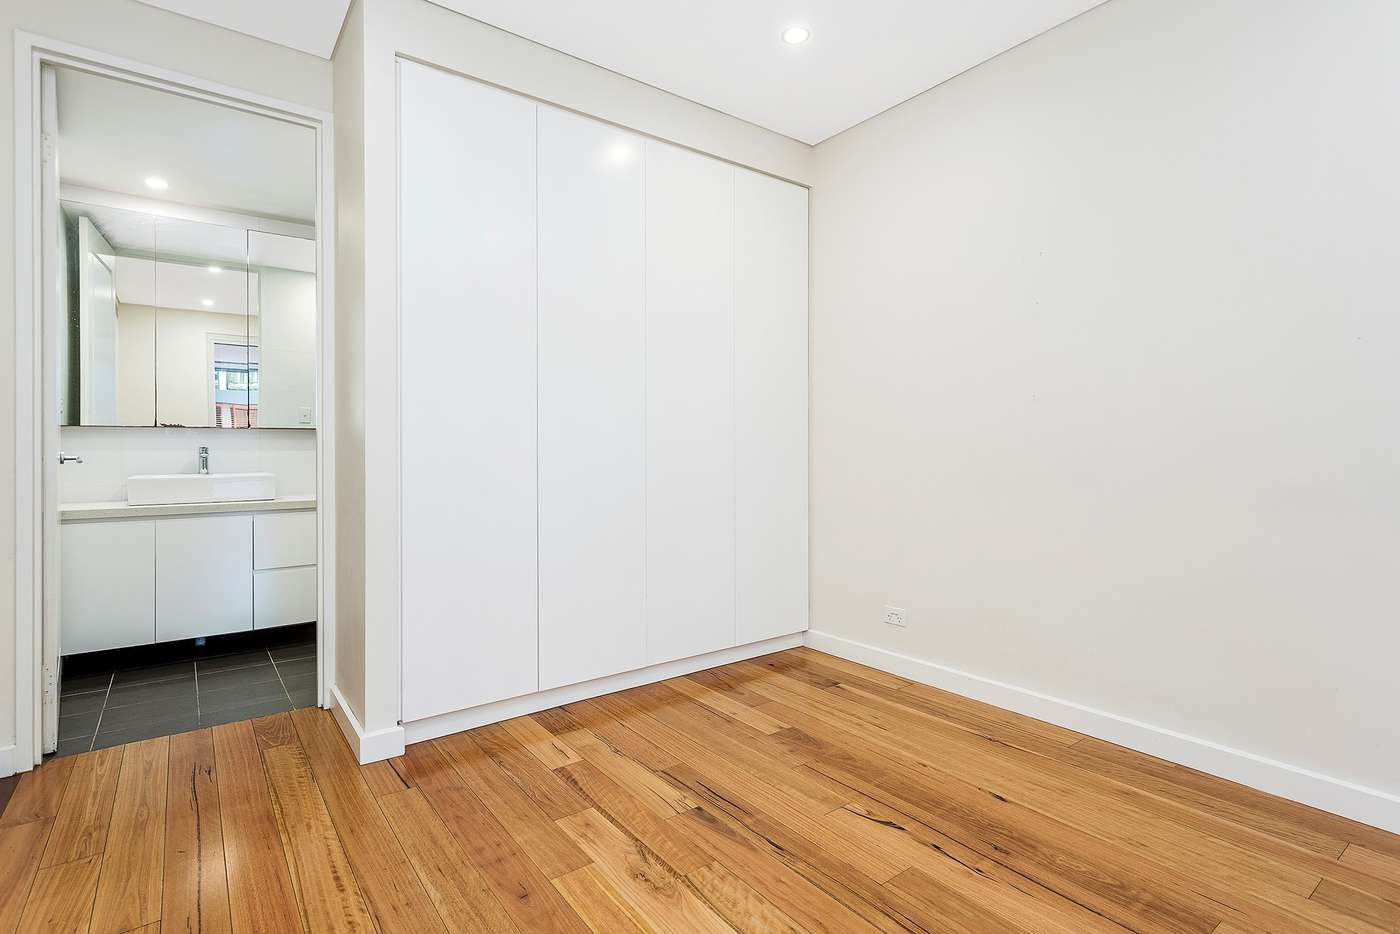 Sixth view of Homely apartment listing, 302/5 Atchison St, St Leonards NSW 2065